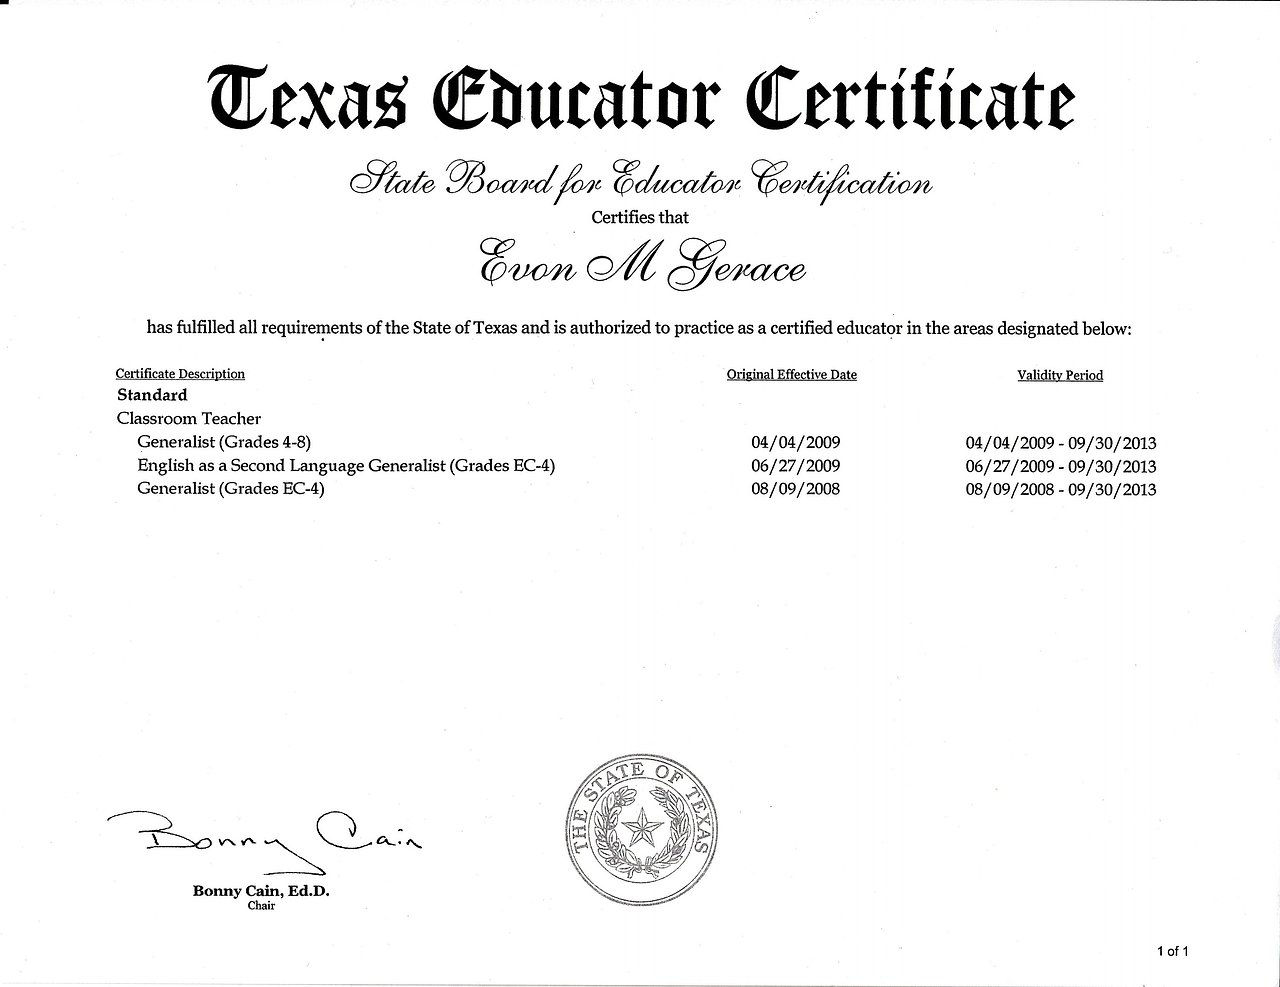 Wix evon gerace masters created by emgerace based on long left texas teaching license xflitez Images